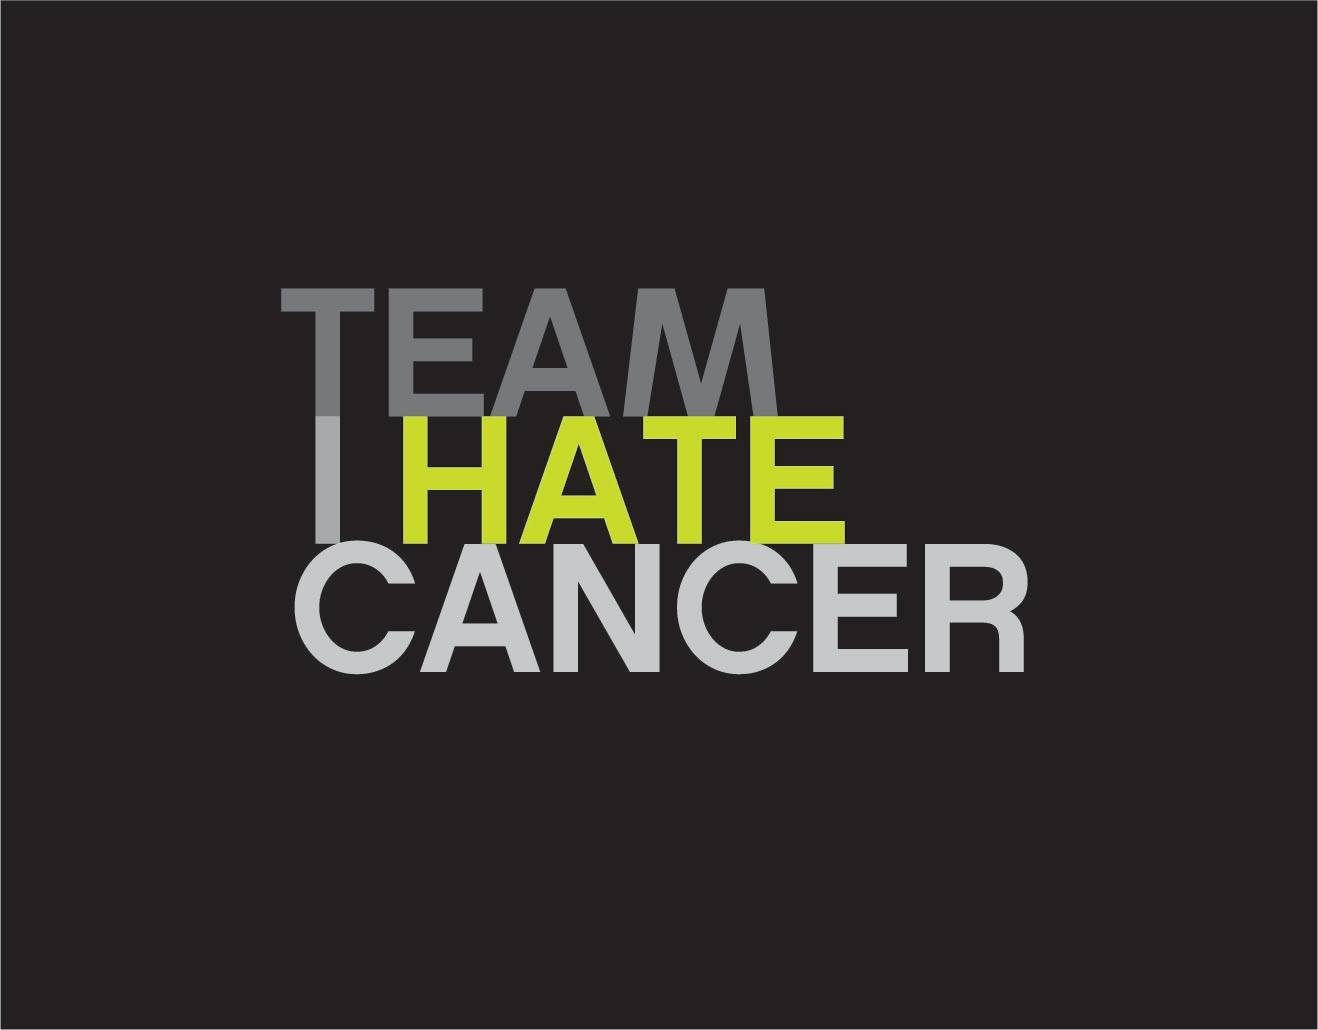 i hate cancer logo.jpg